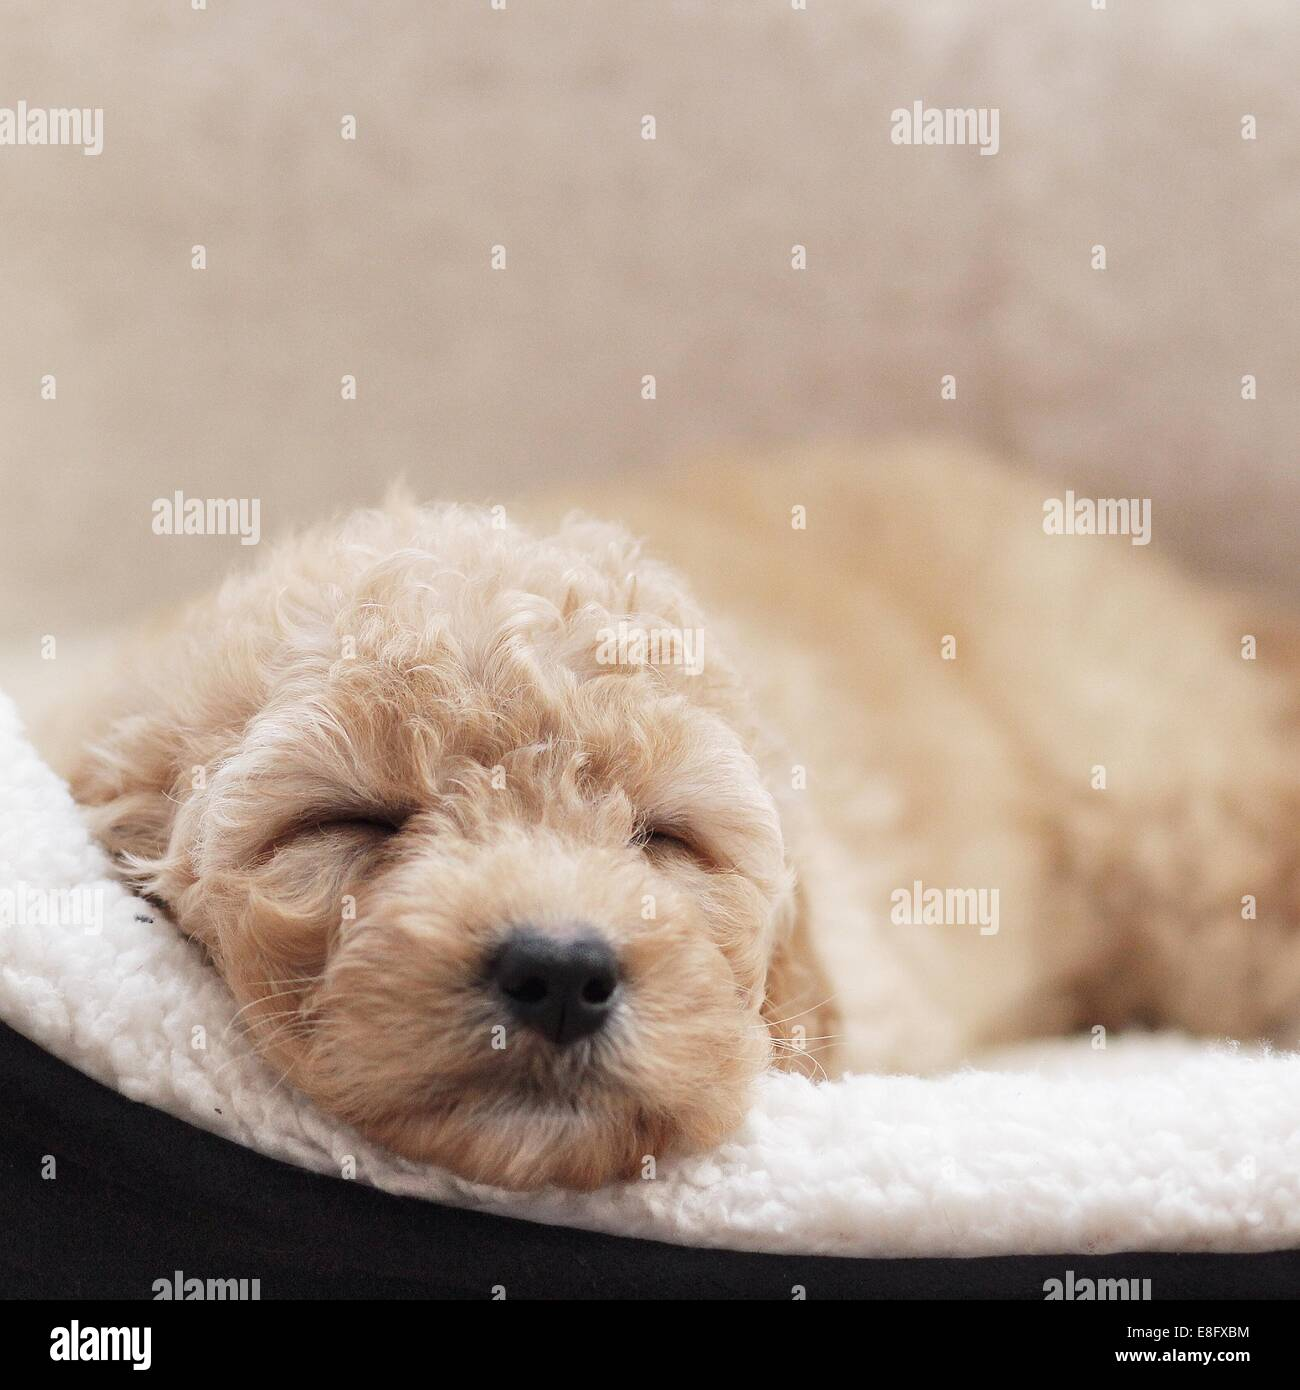 Puppy dog sleeping in basket - Stock Image